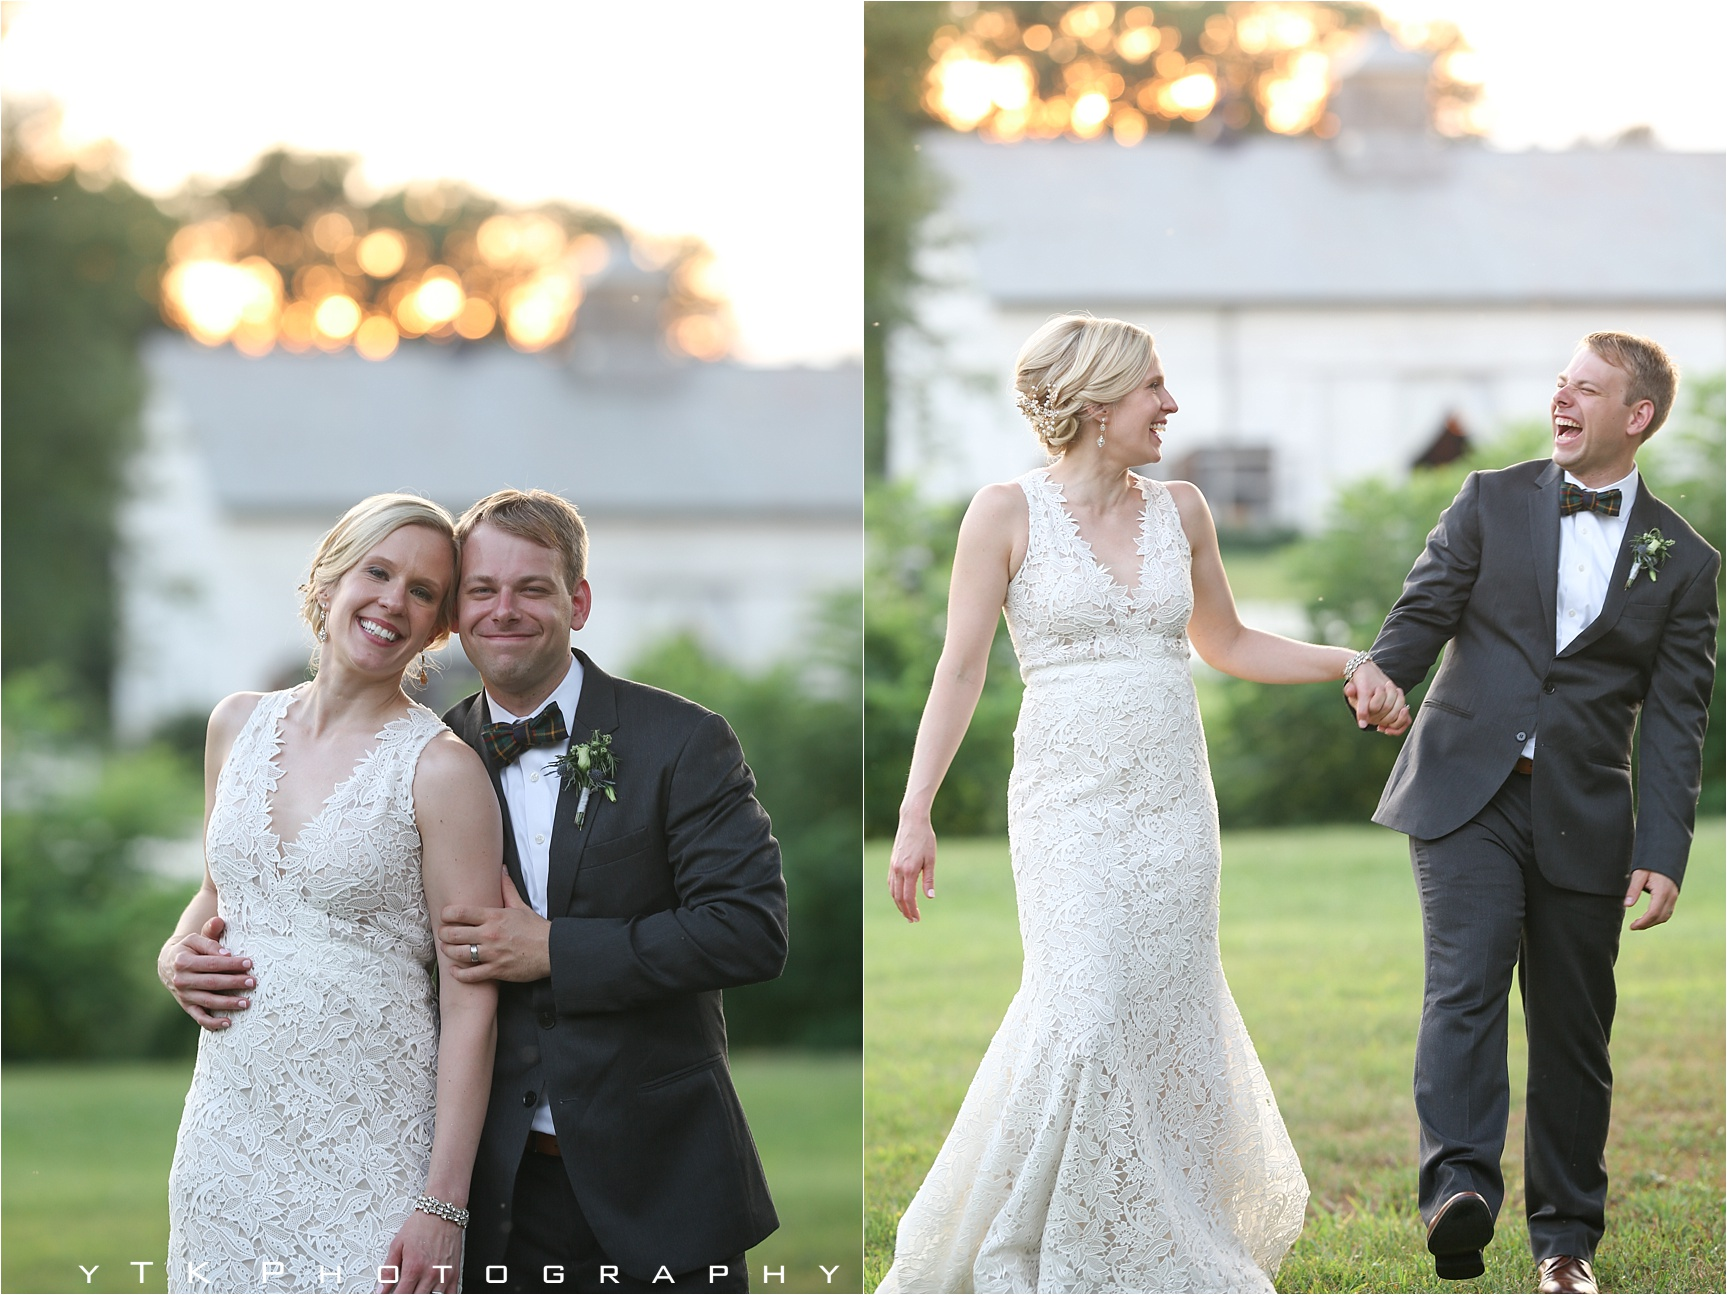 Rustic Chic Shaker Barn Wedding with Lynn + Bill | Albany ...